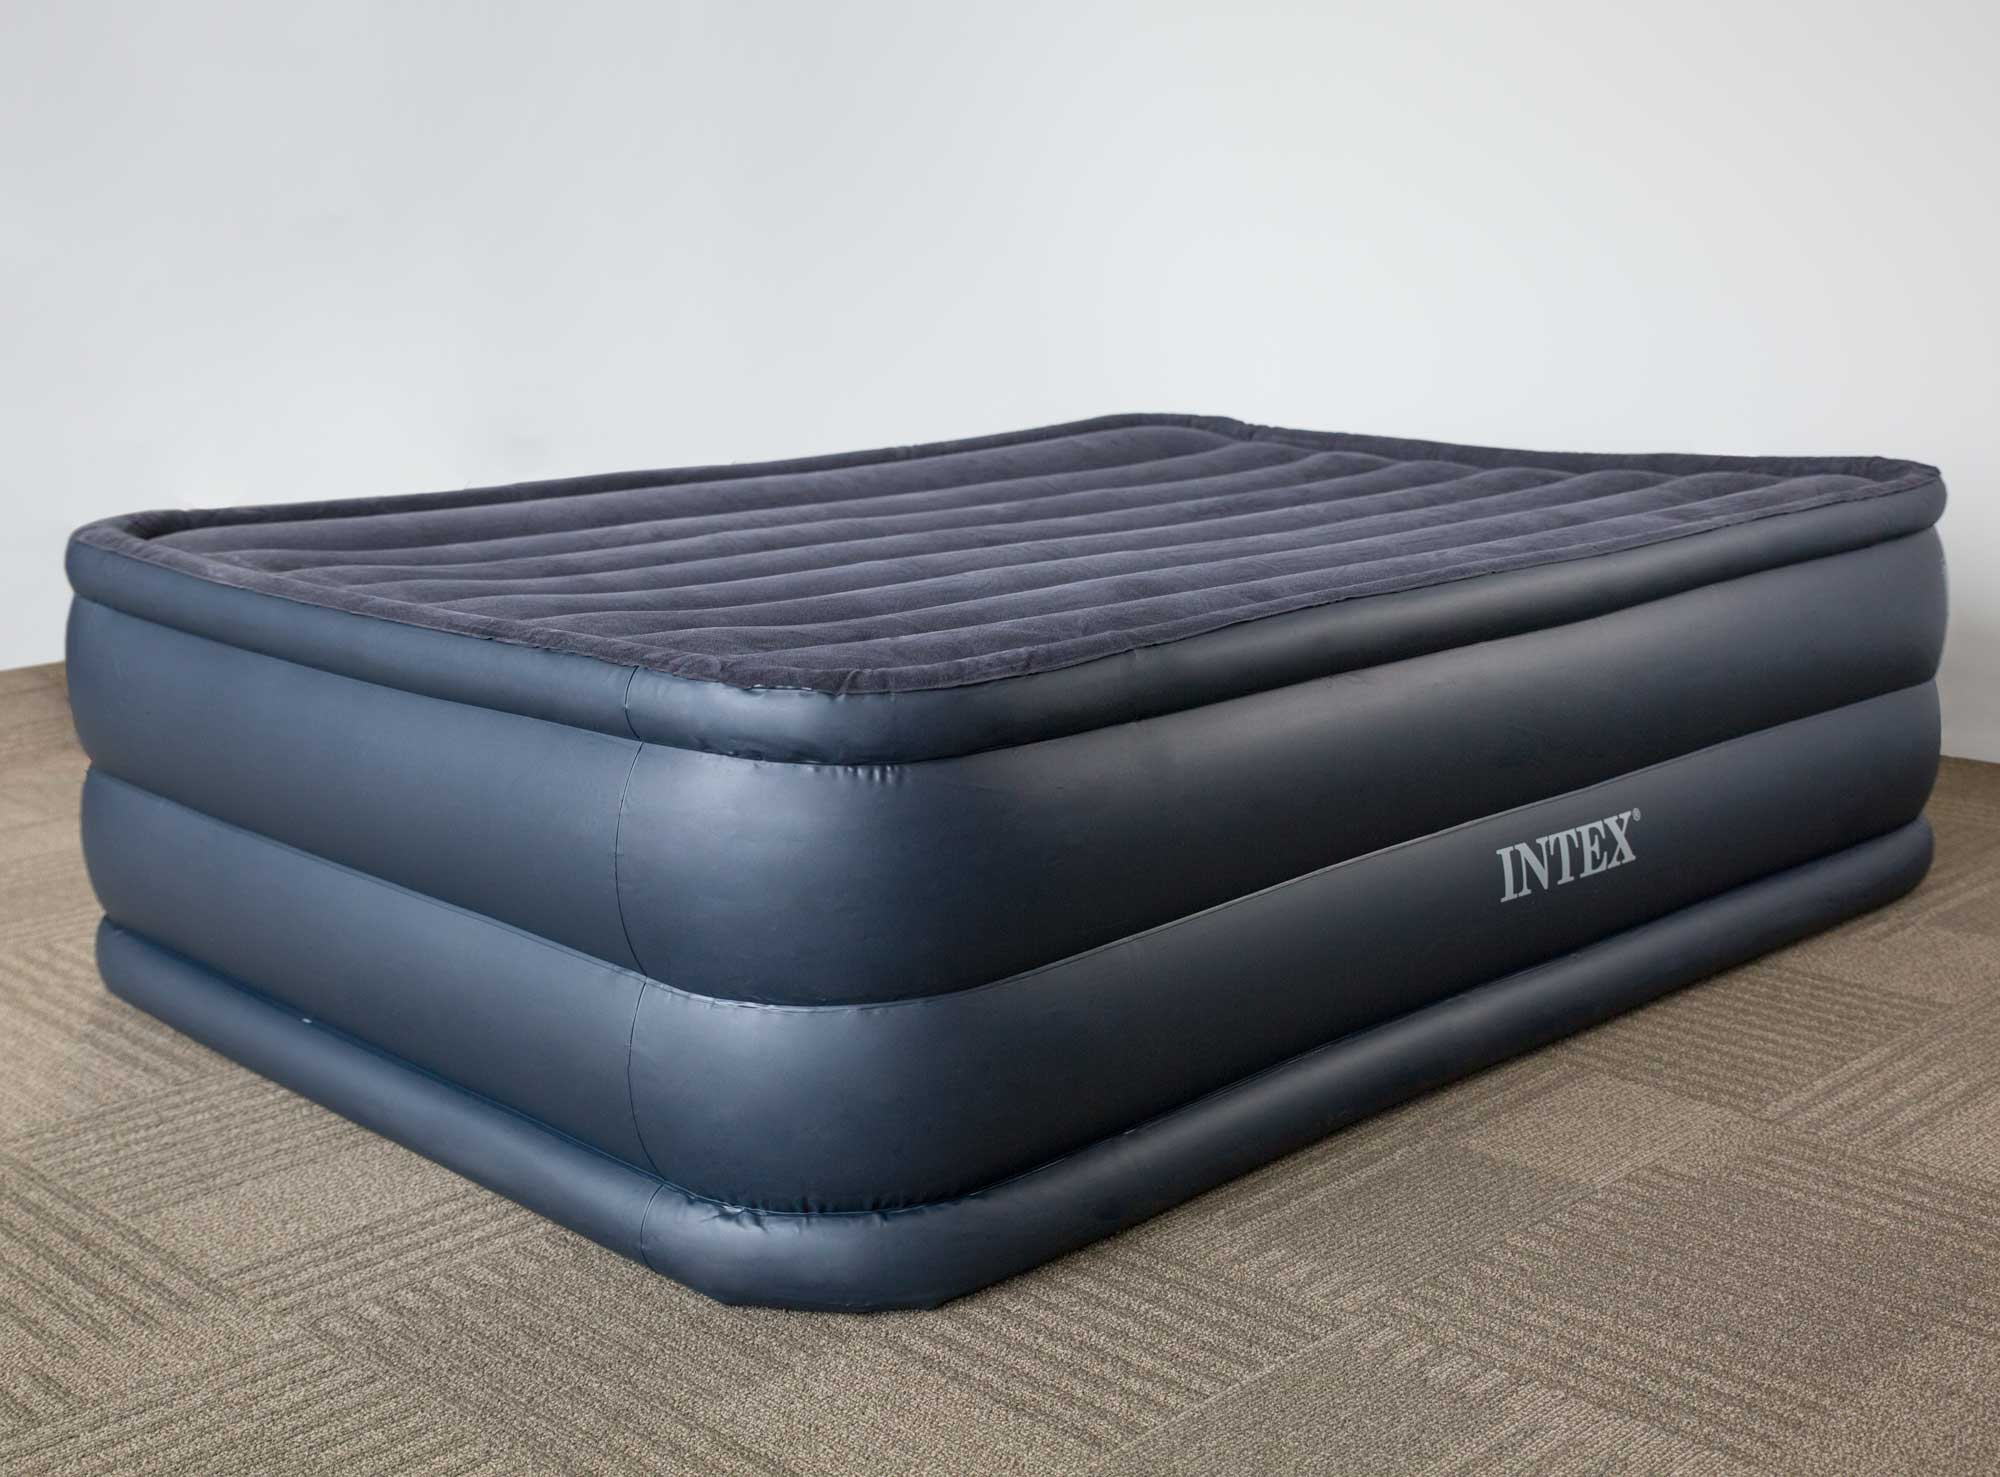 raised deluxe blogbeen beds of mattresses rest intex use to air how make twin pillow ojsnrrz inflatable pumps bed pack luxury